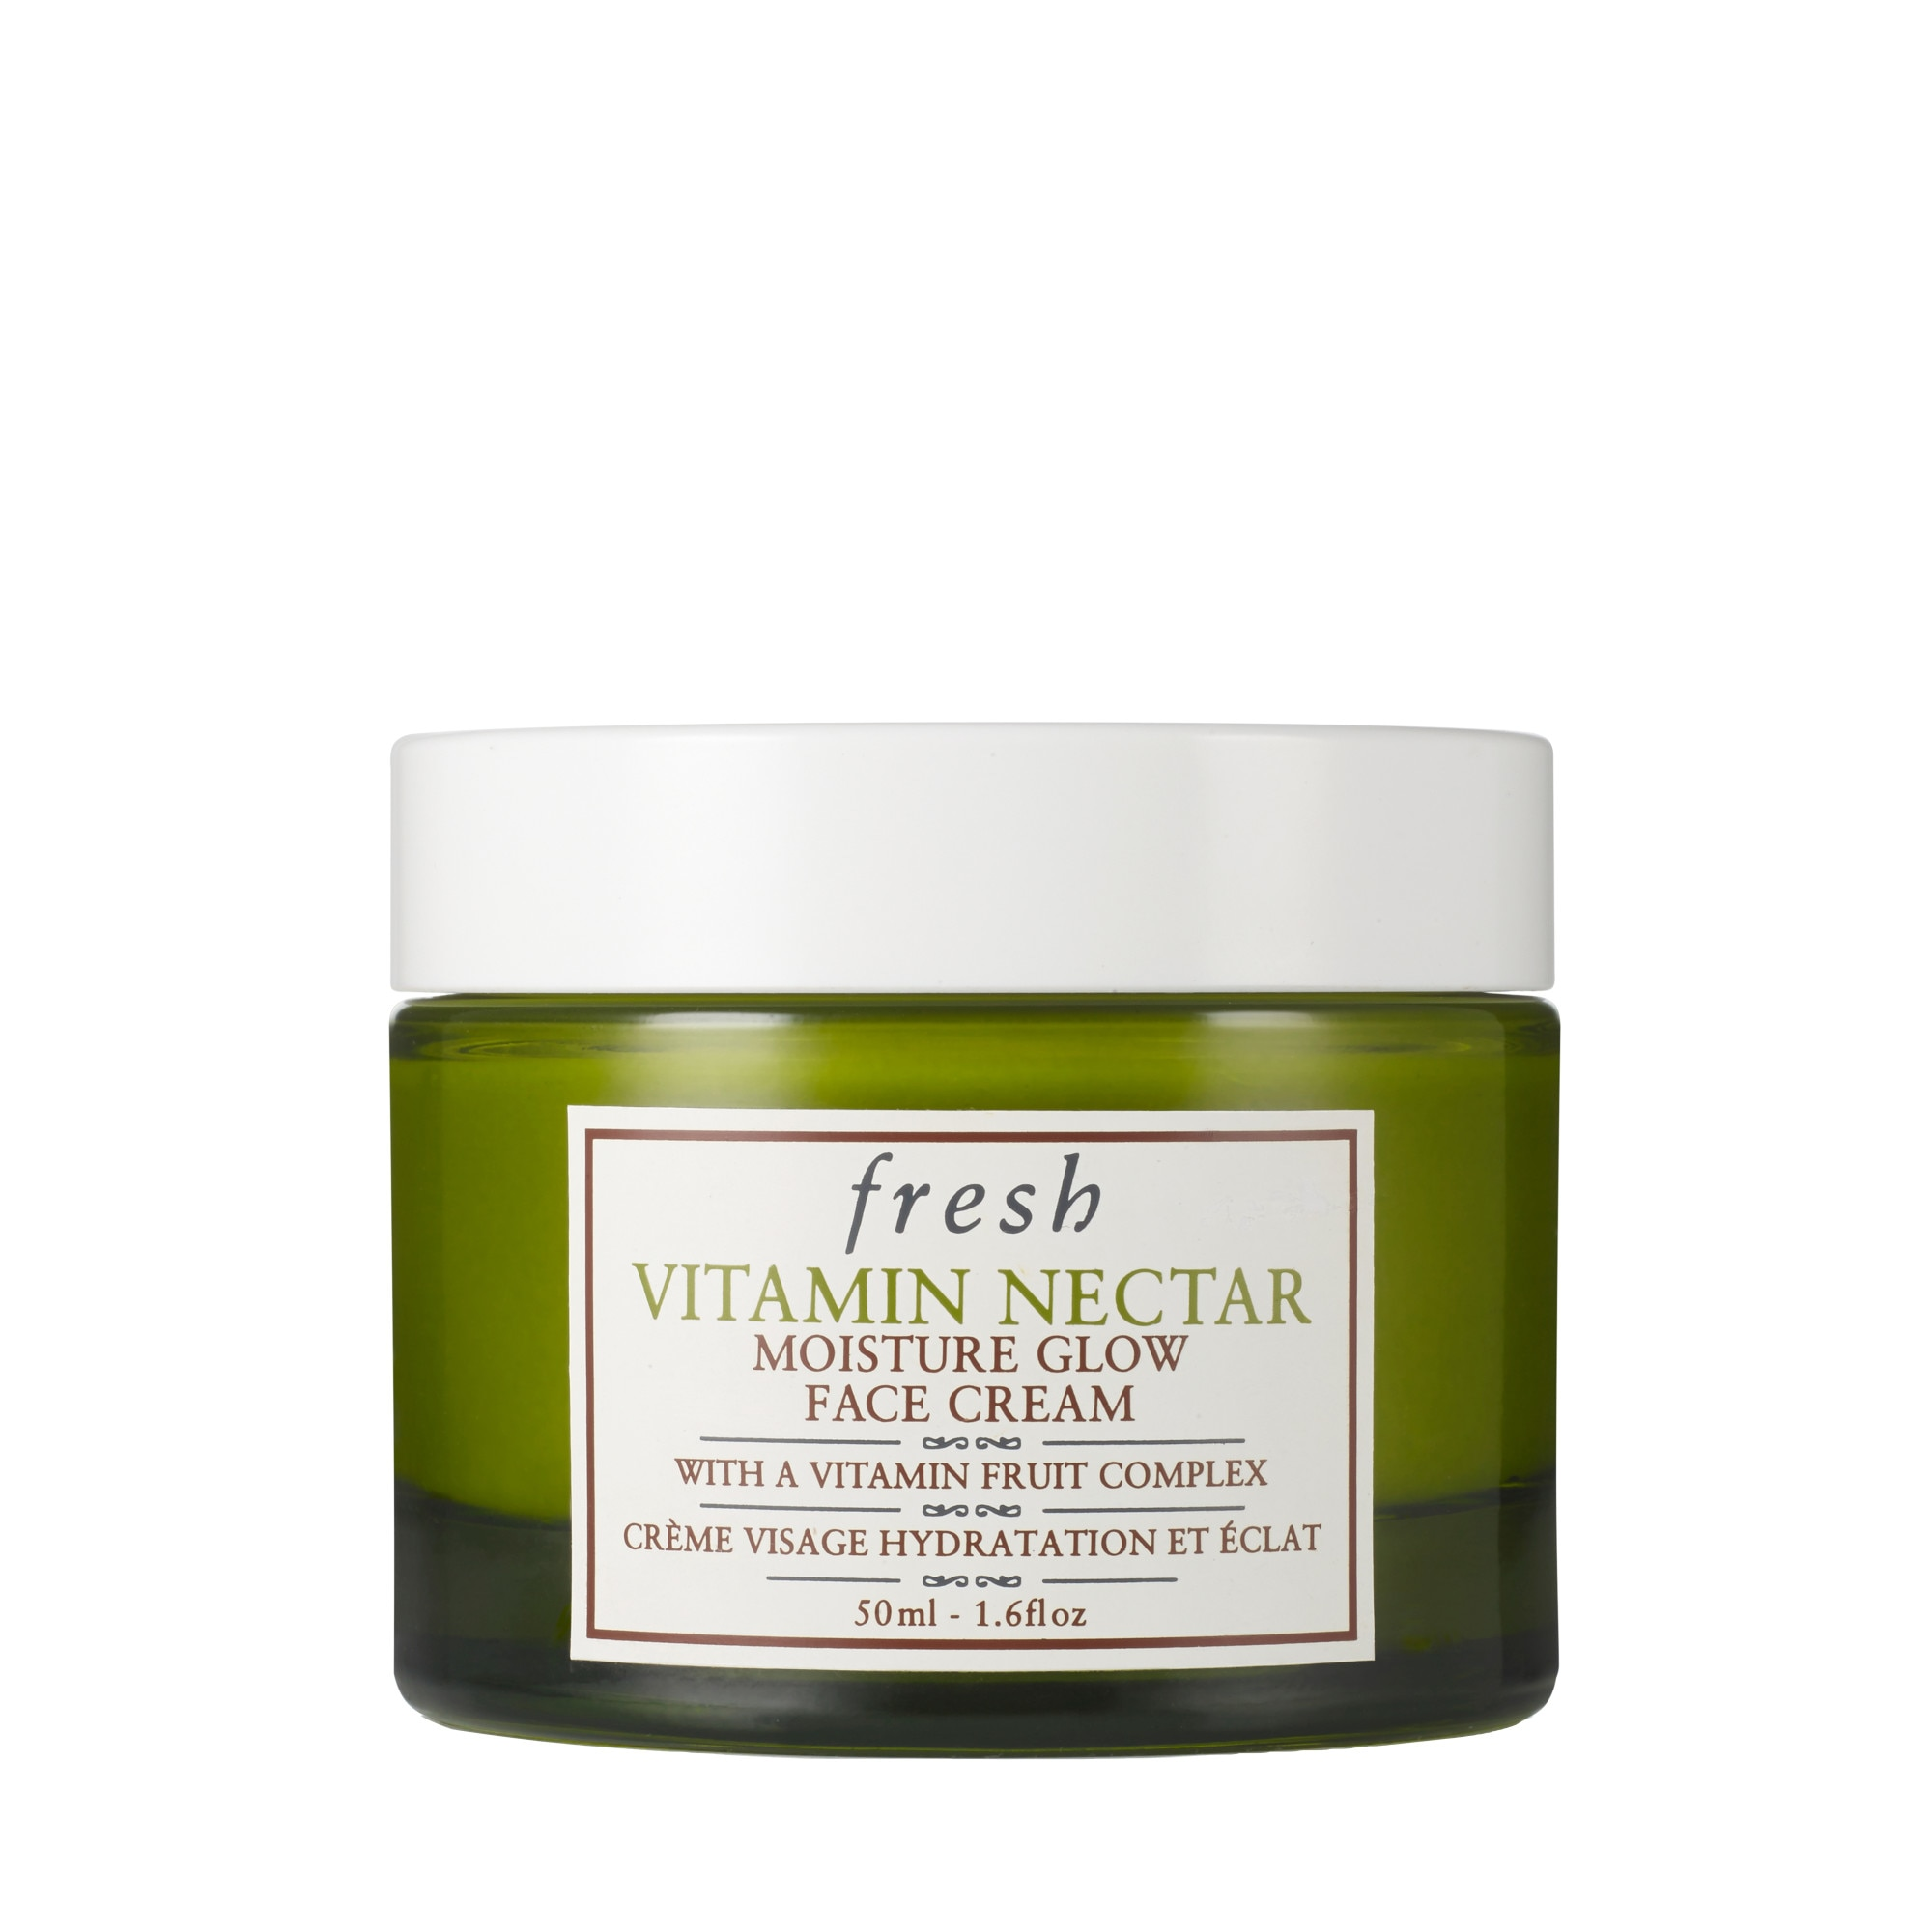 Fresh Vitamin Nectar Moisture Glow Face Cream 50ml